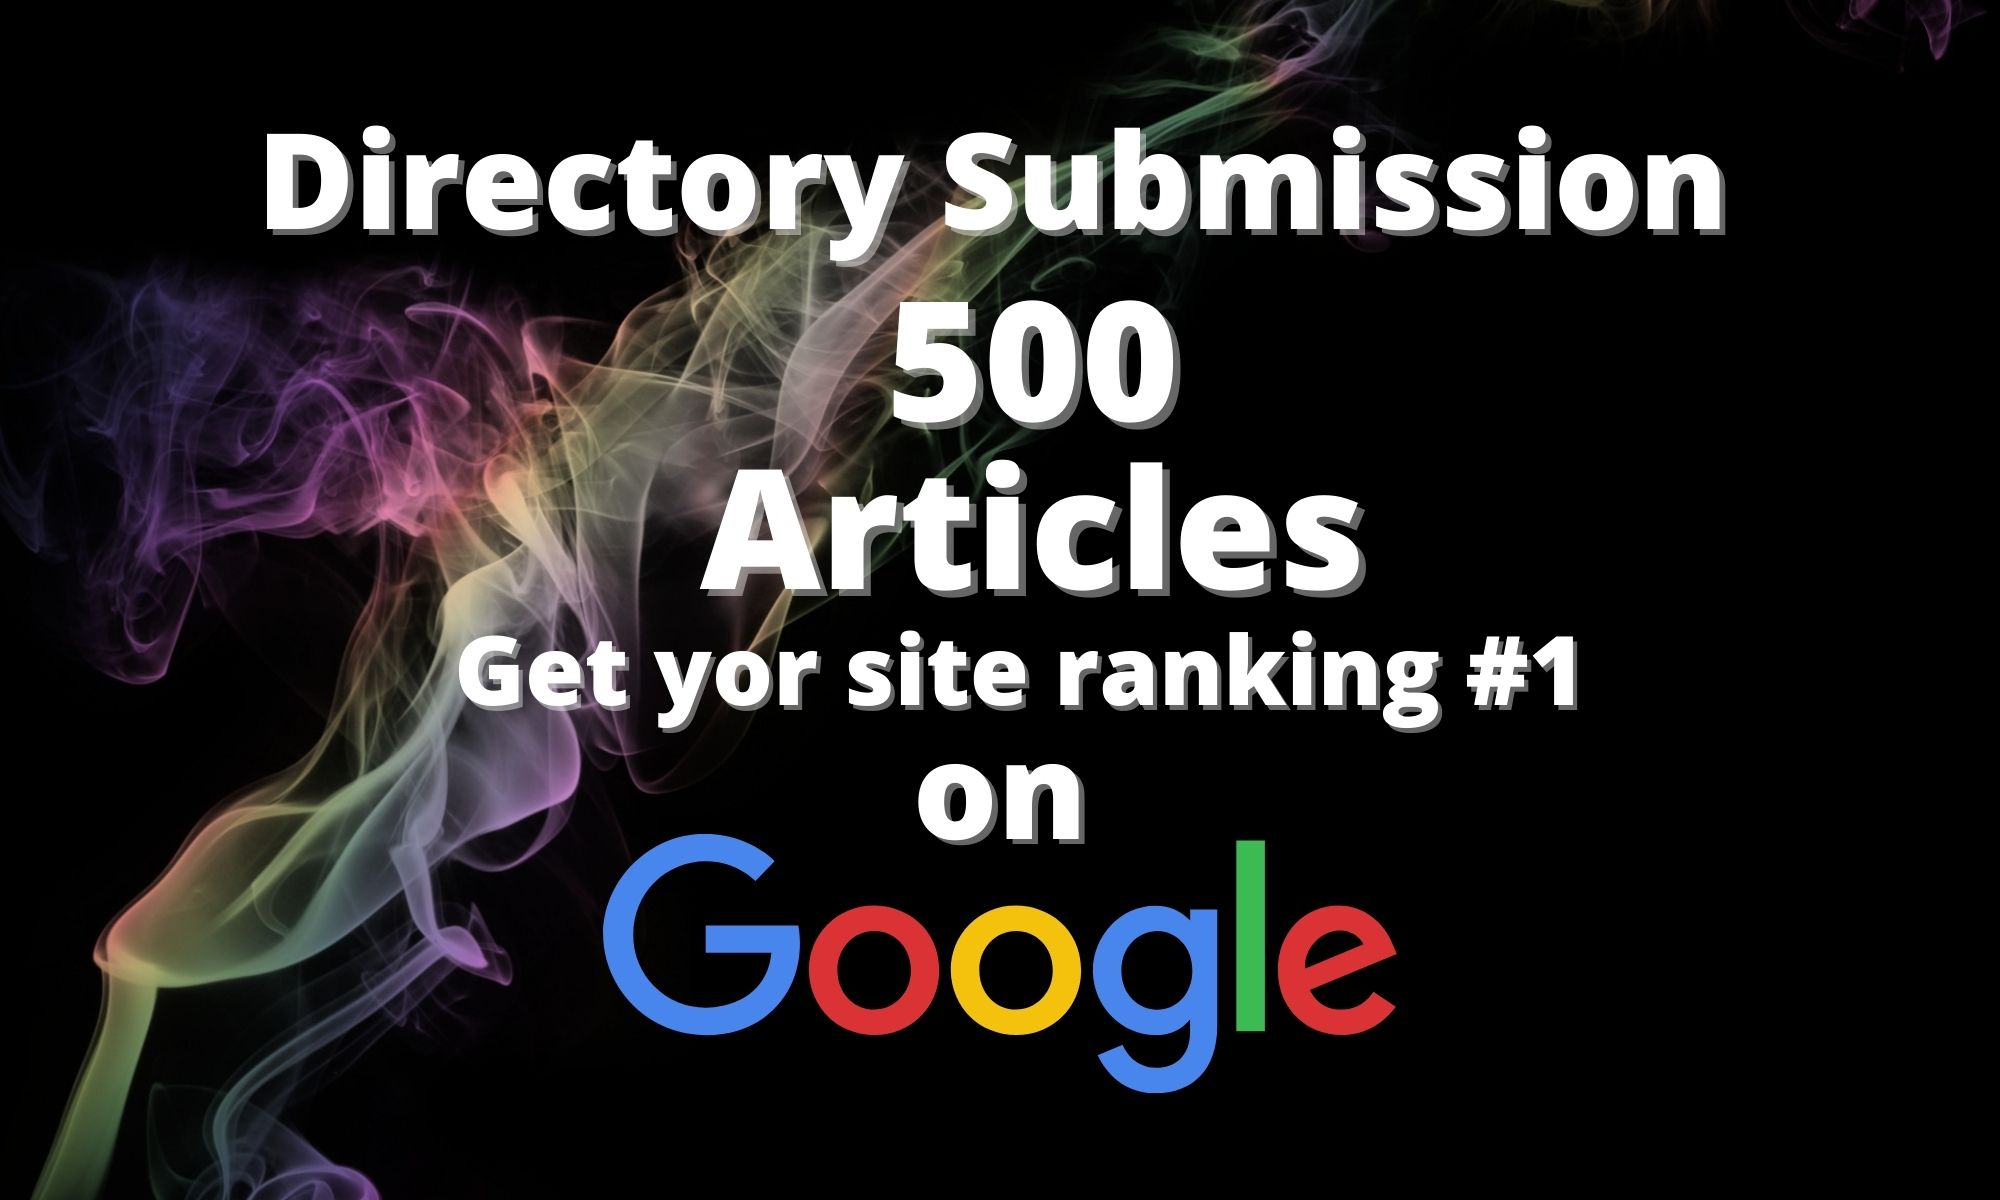 We will submit website to 500 directories